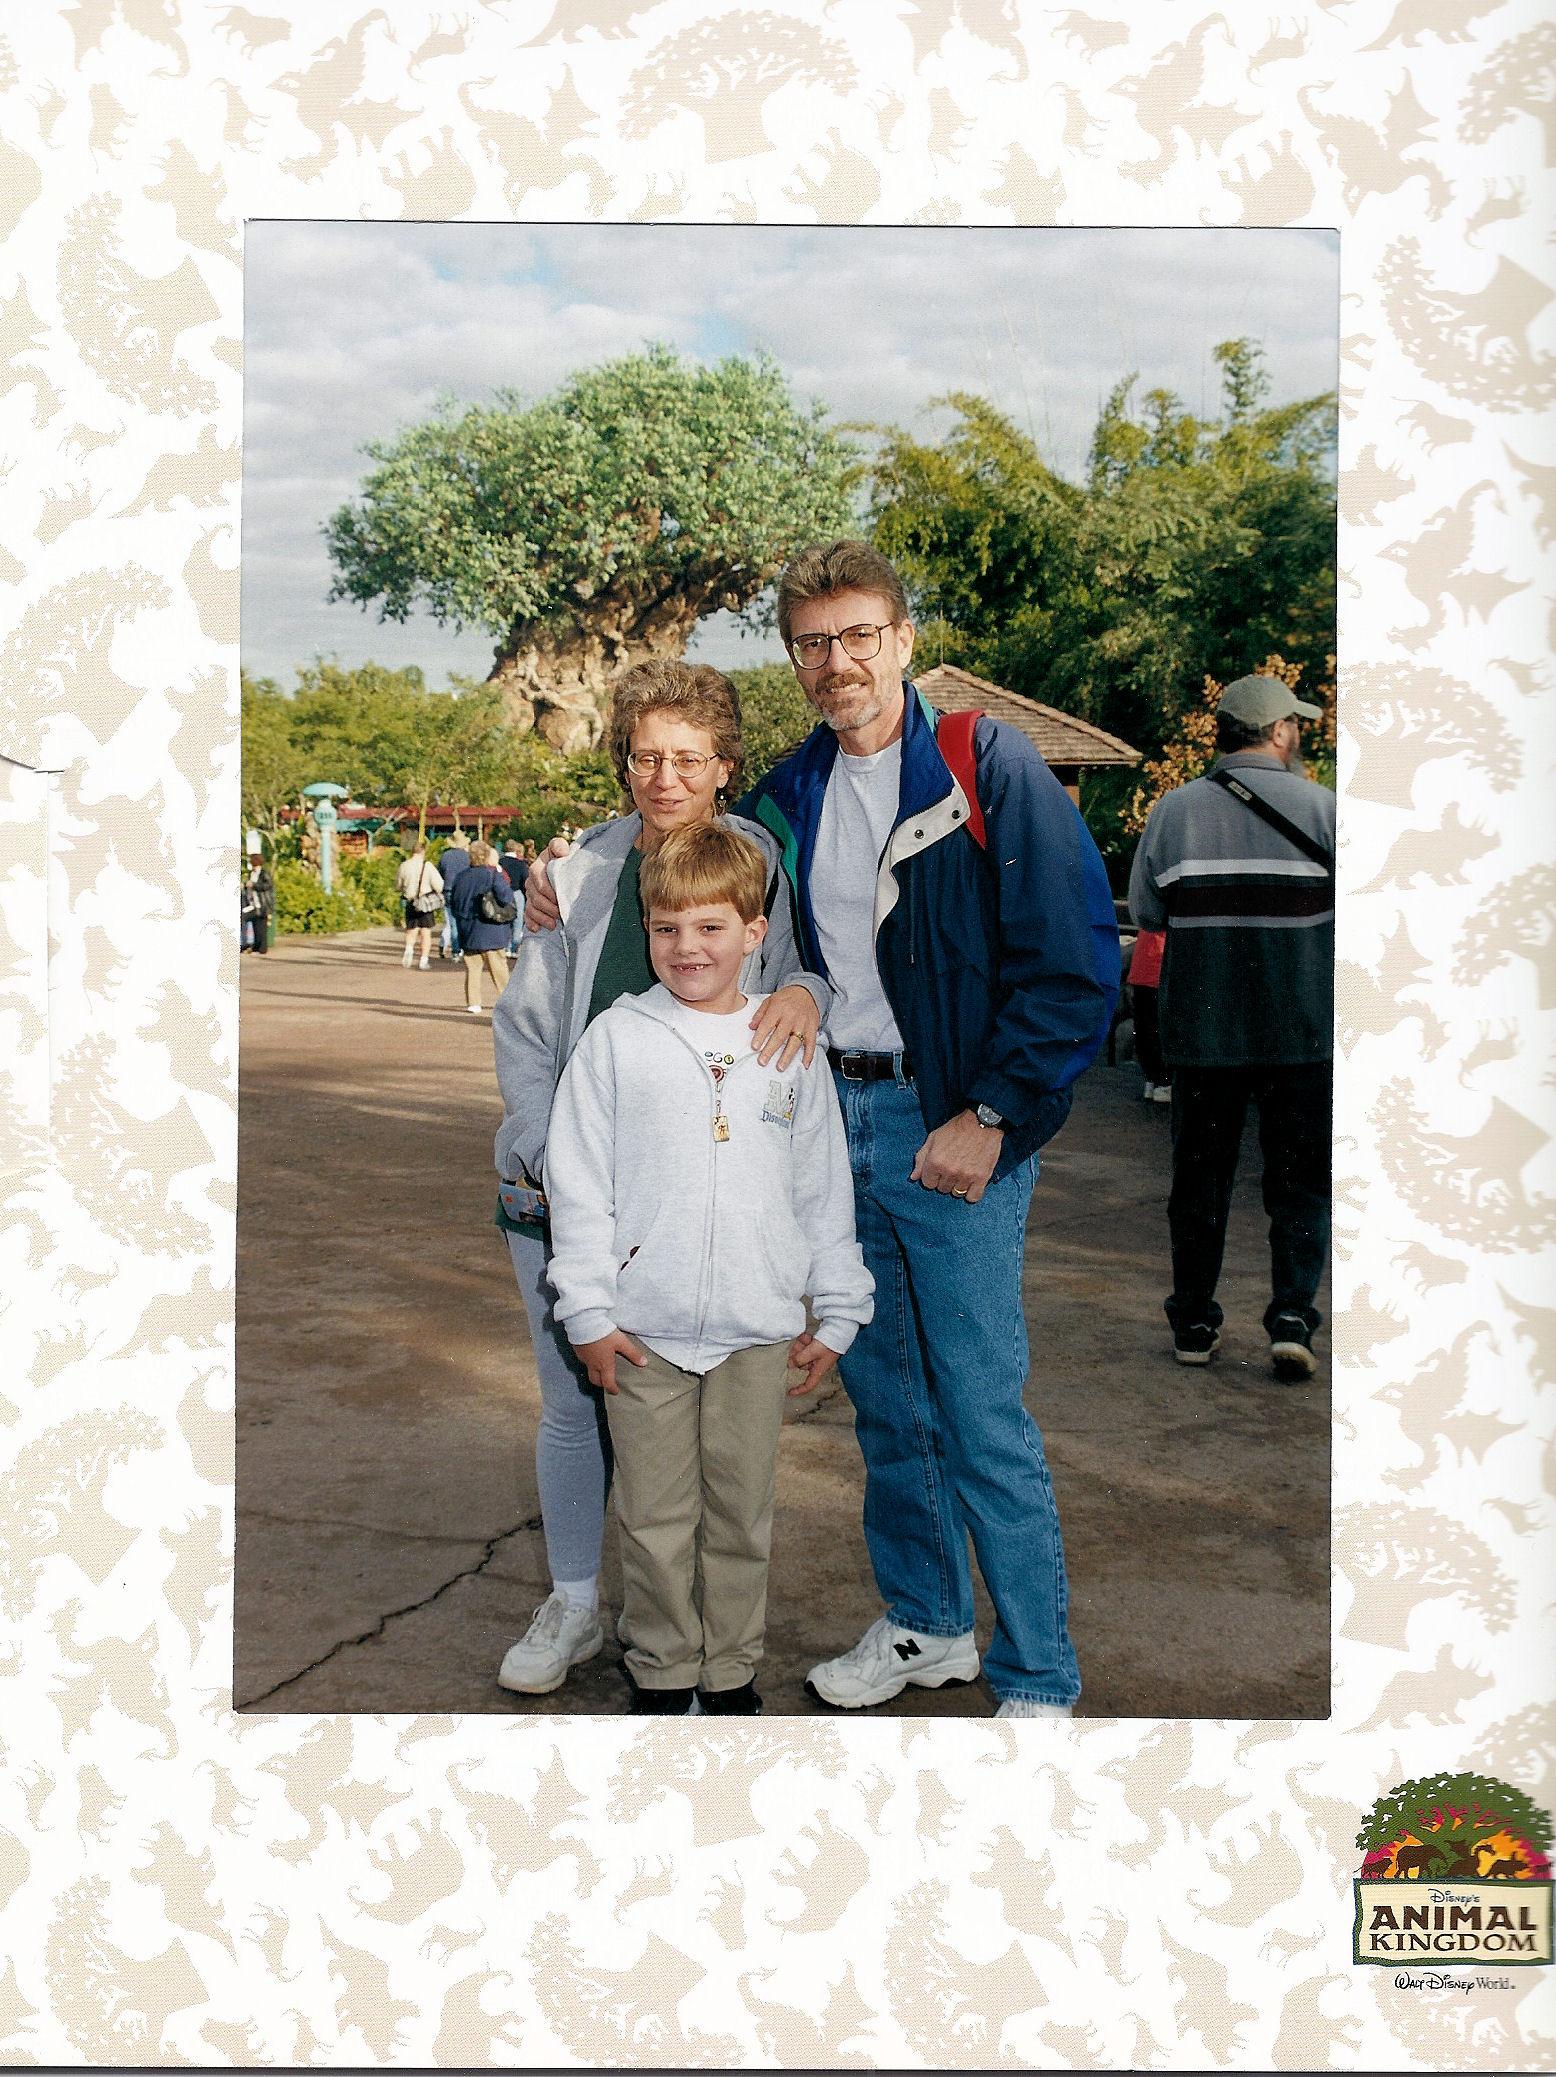 Me and my parents in front of The Tree of Life at Disney's Animal Kingdom at Disney World.